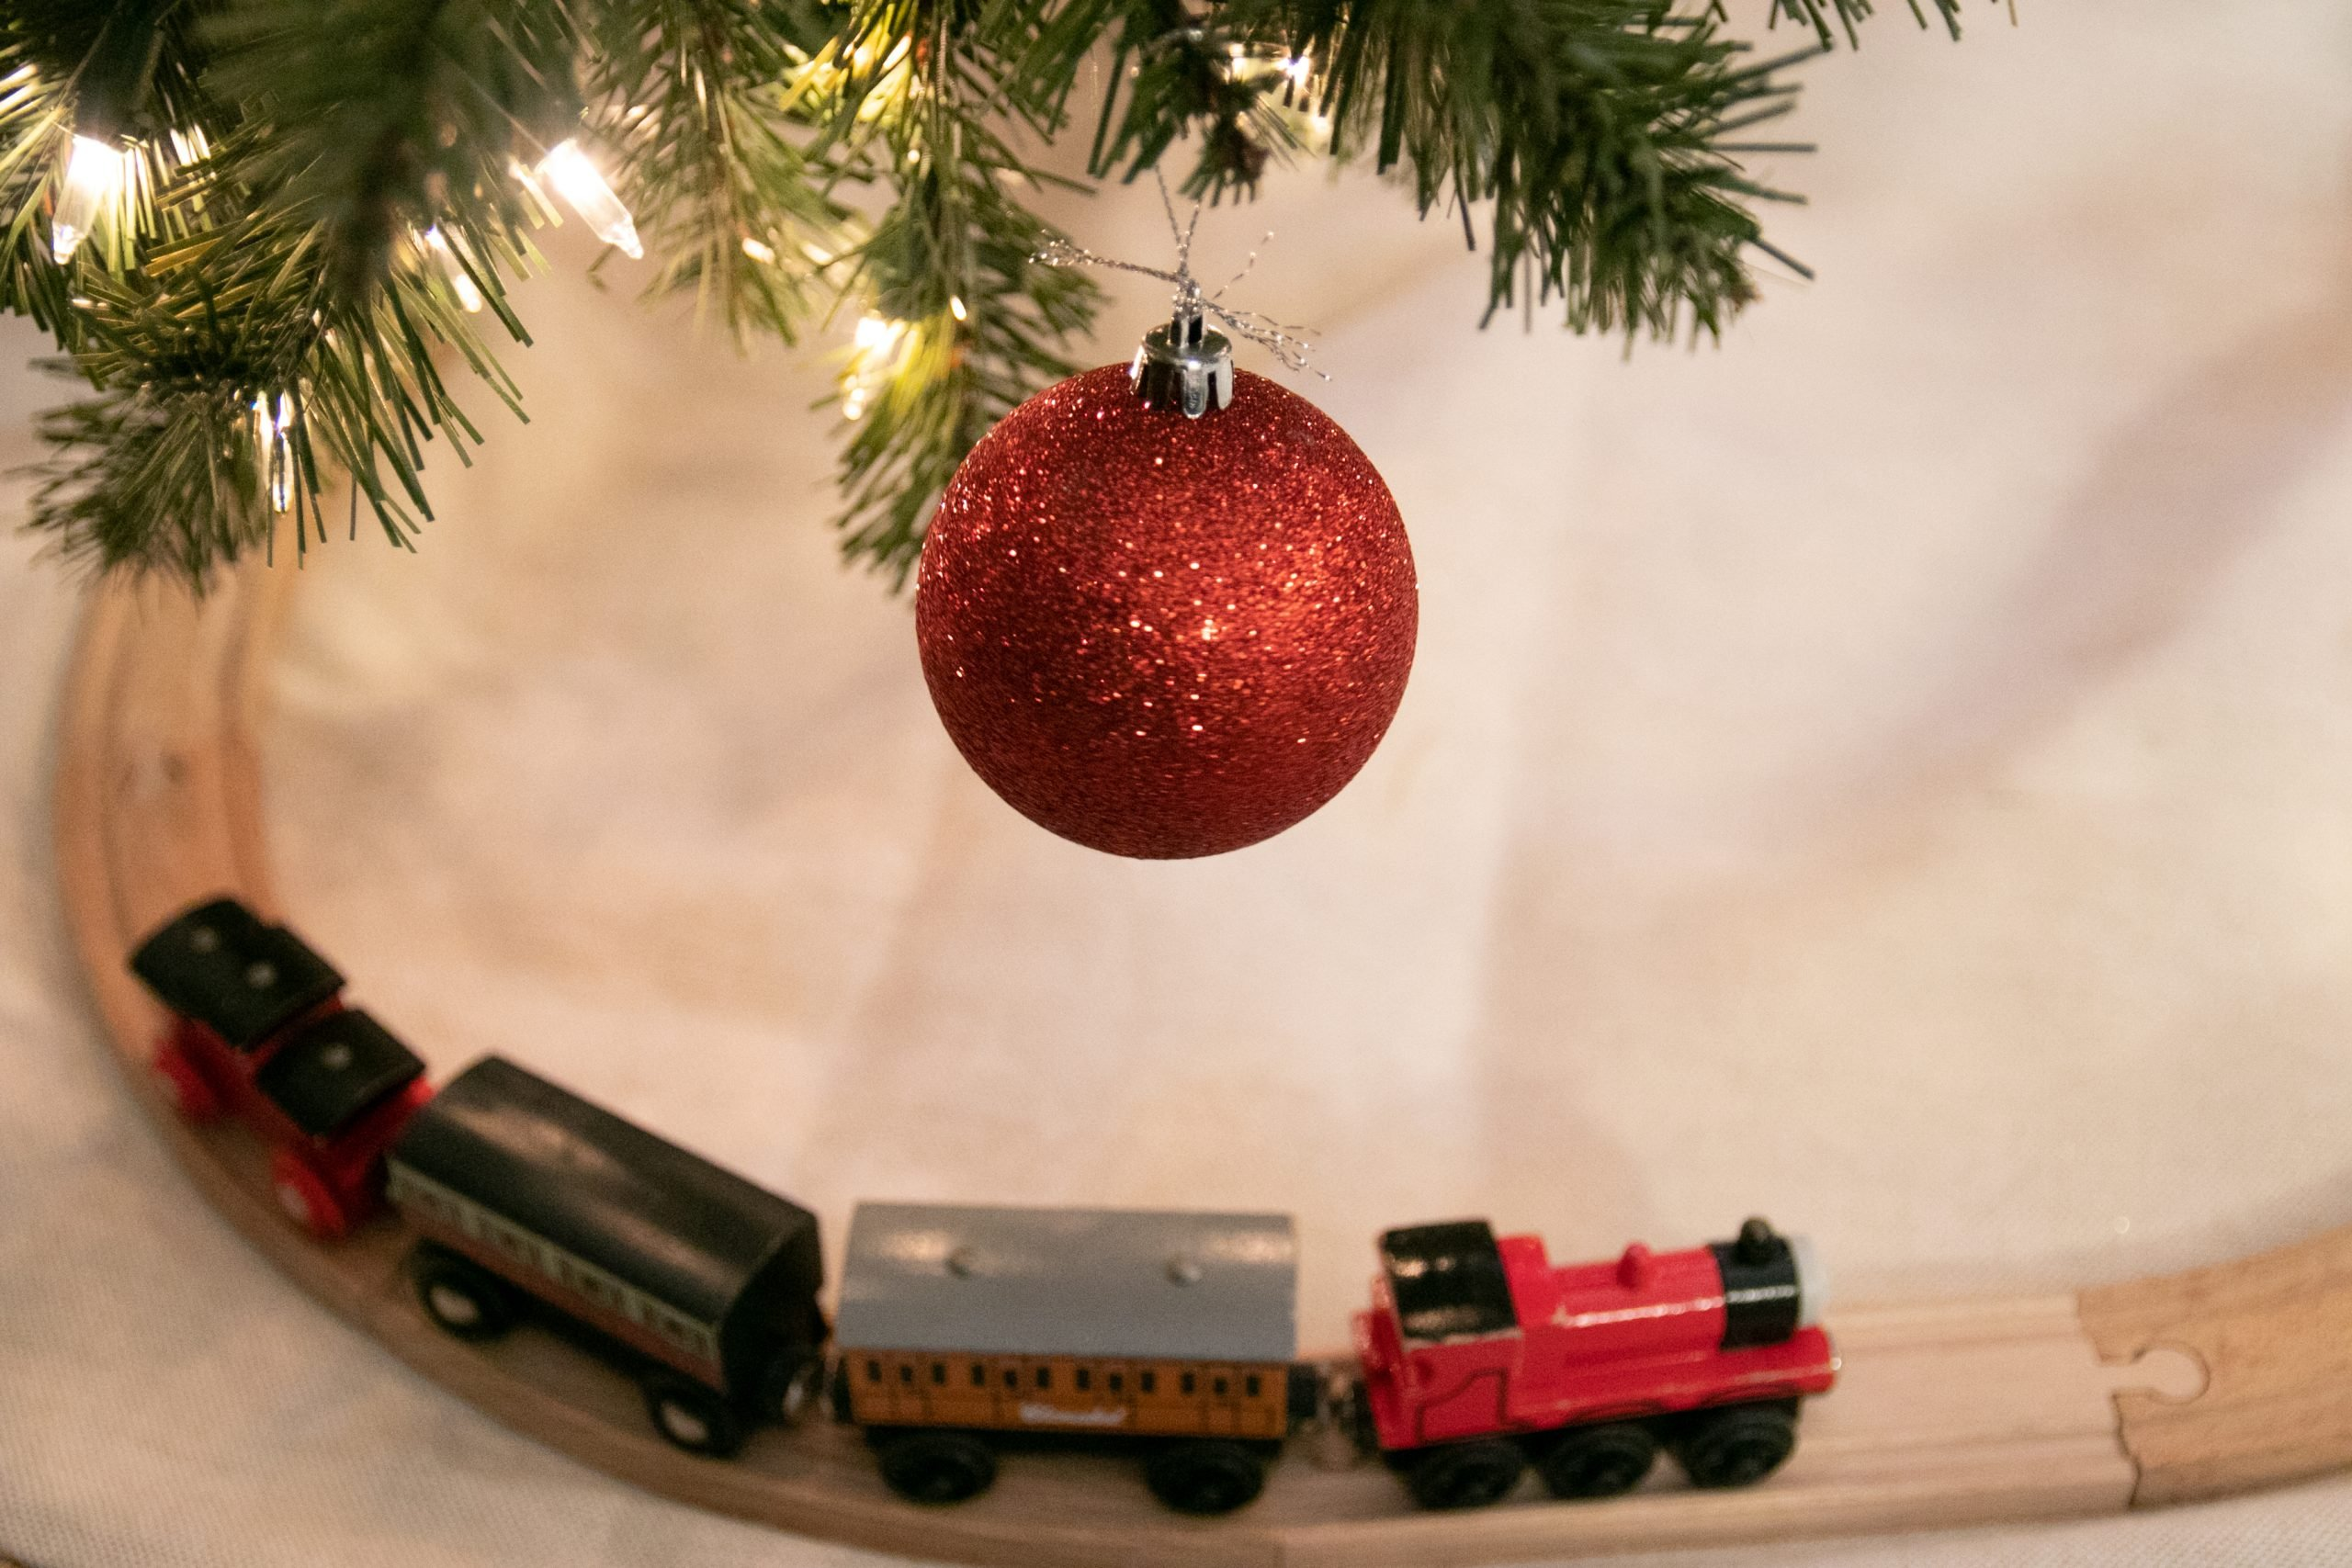 Free Stock Photo of Toy Train On Tracks Below Hanging Red Bauble Ornament